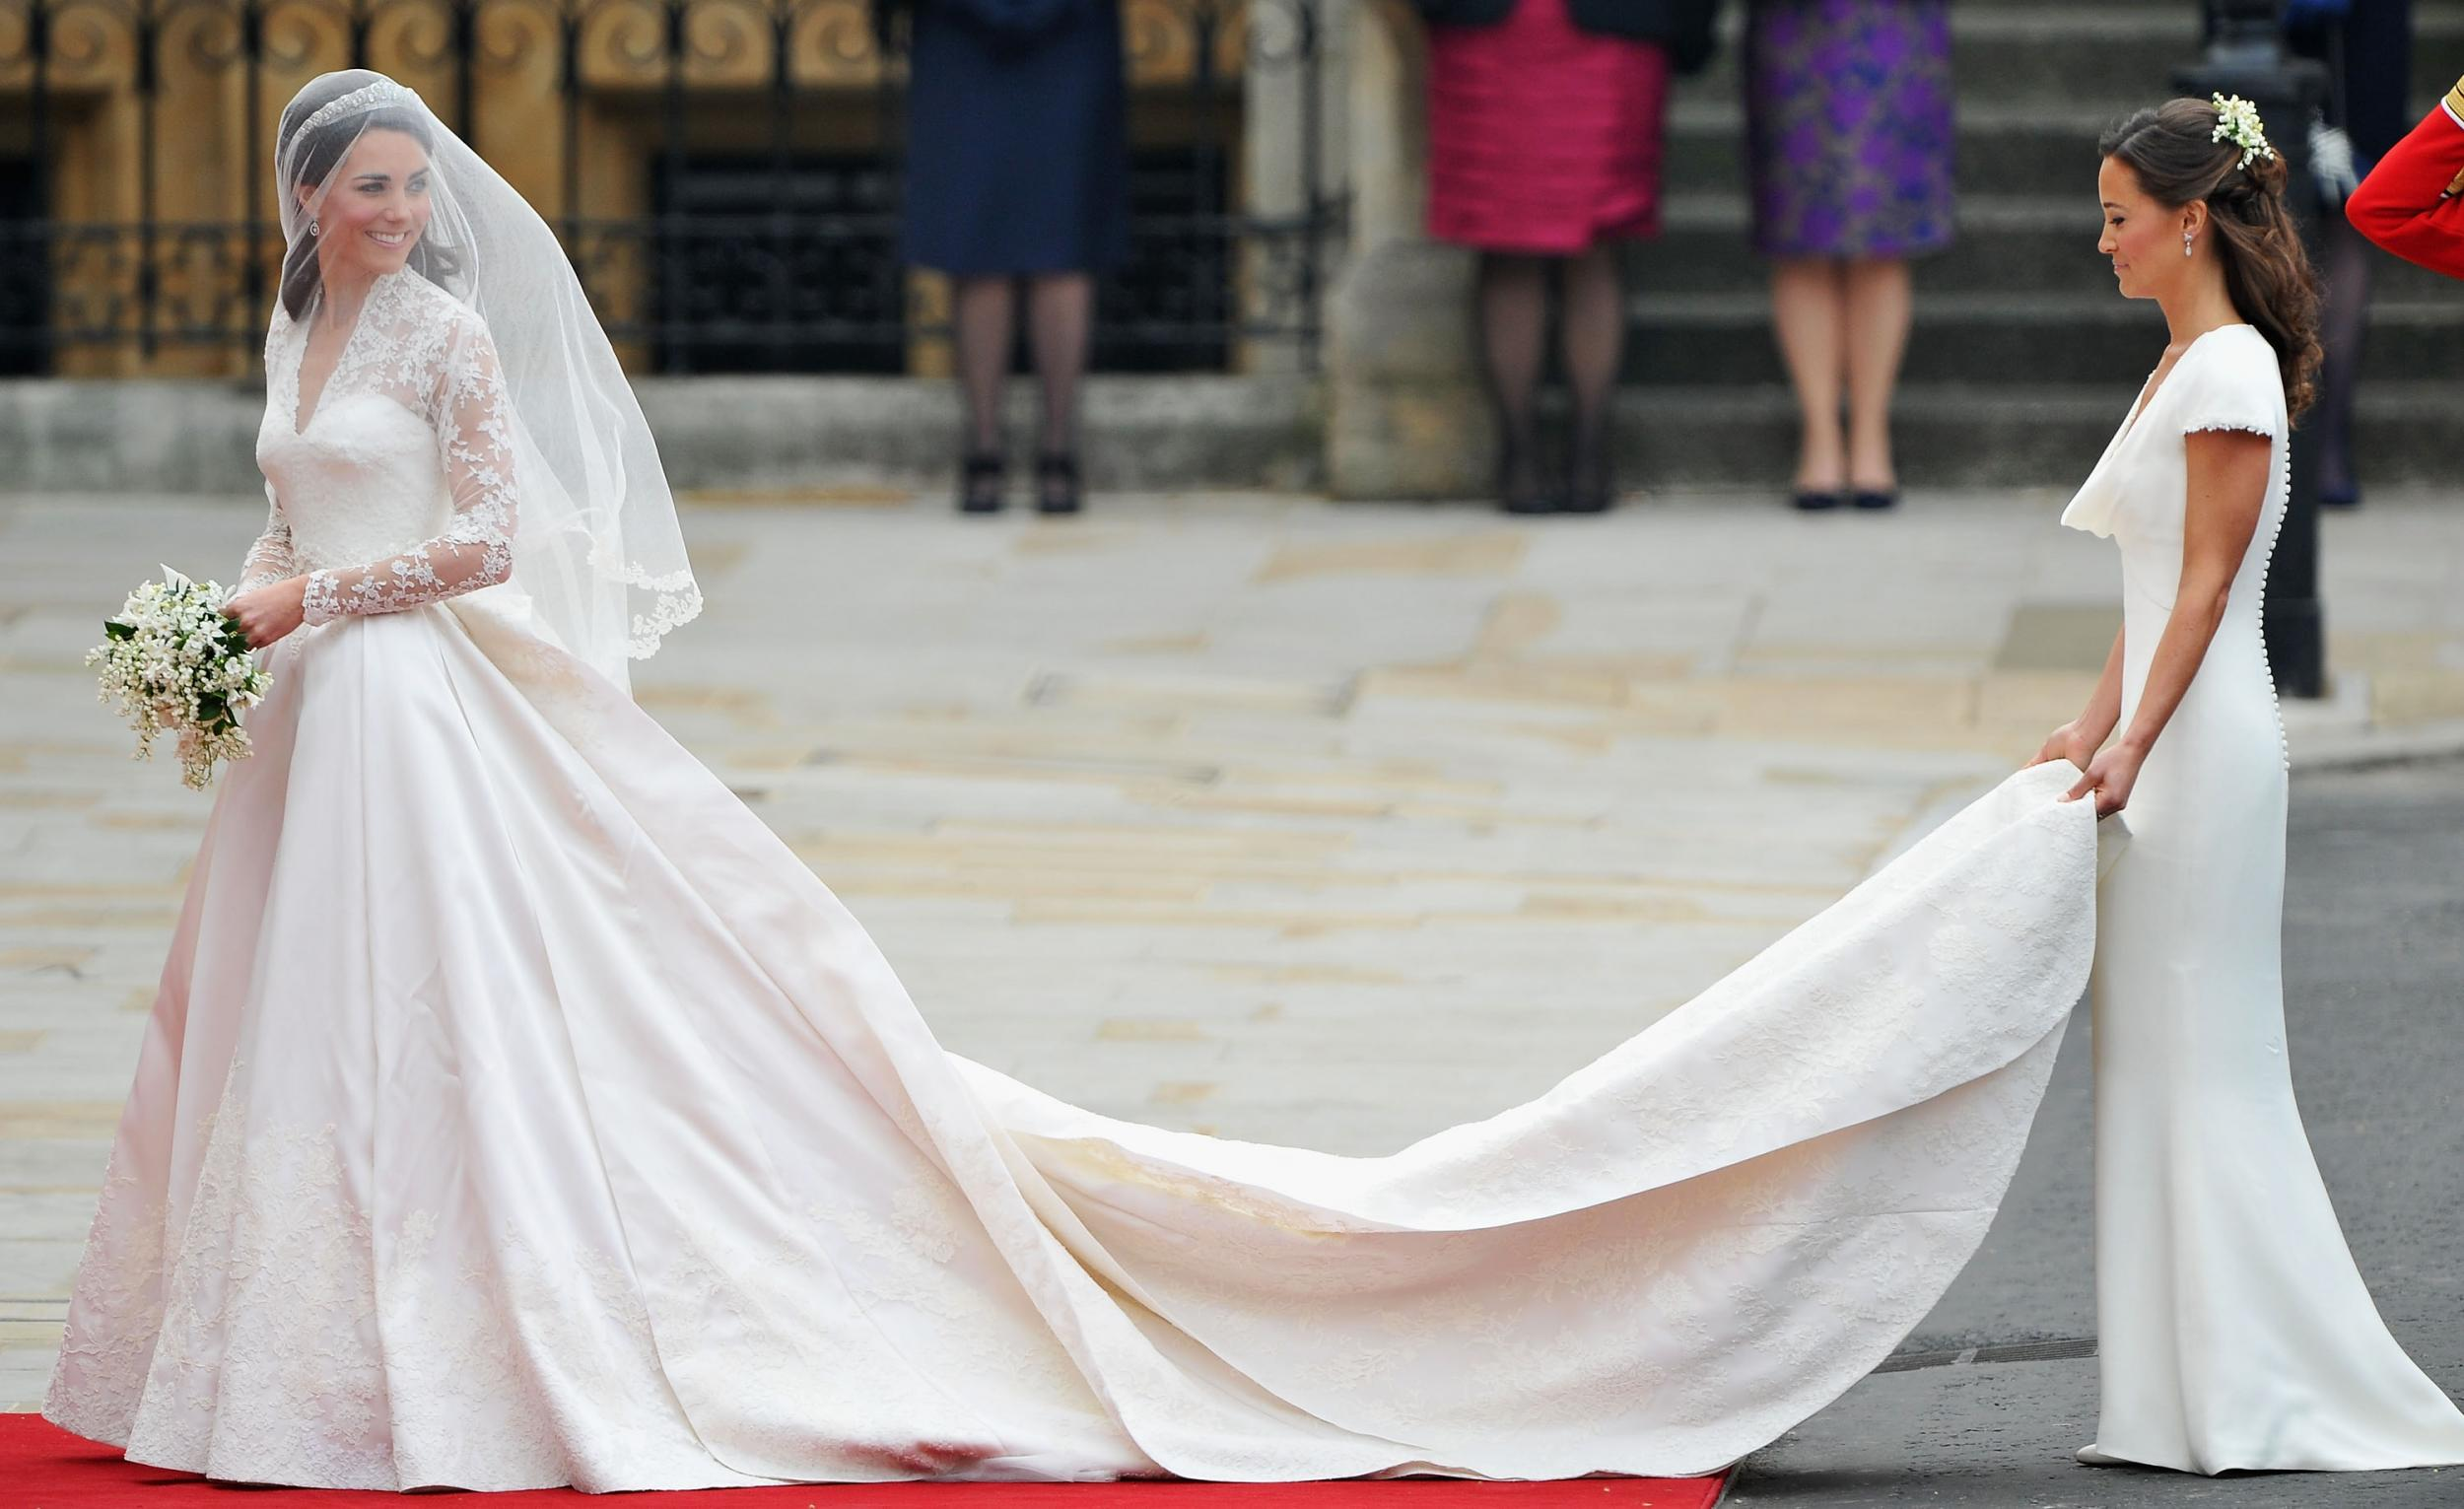 First look at the wedding dress